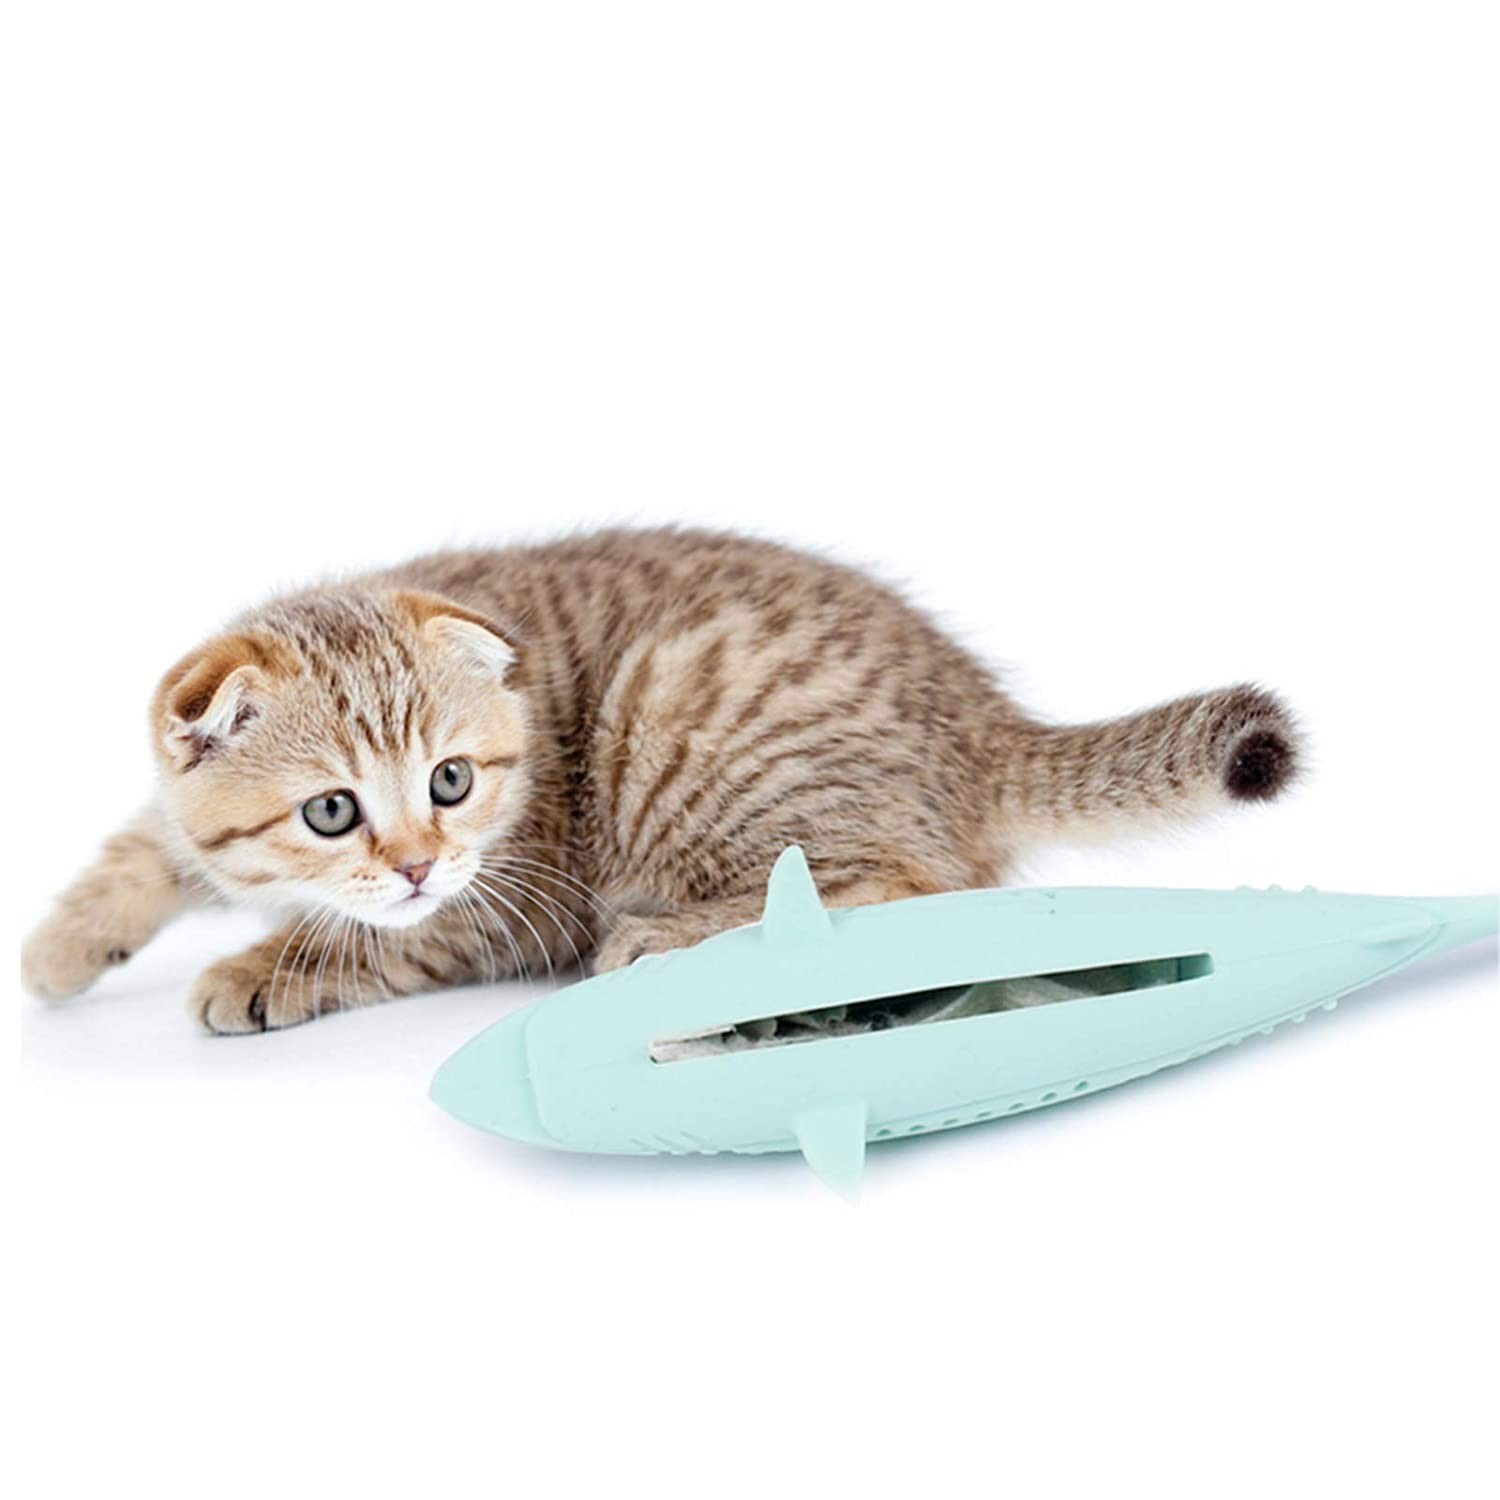 NCONCO Store Fish Shape Kitten Cheap mail order specialty store Toy Silicone Che Cat Teeth